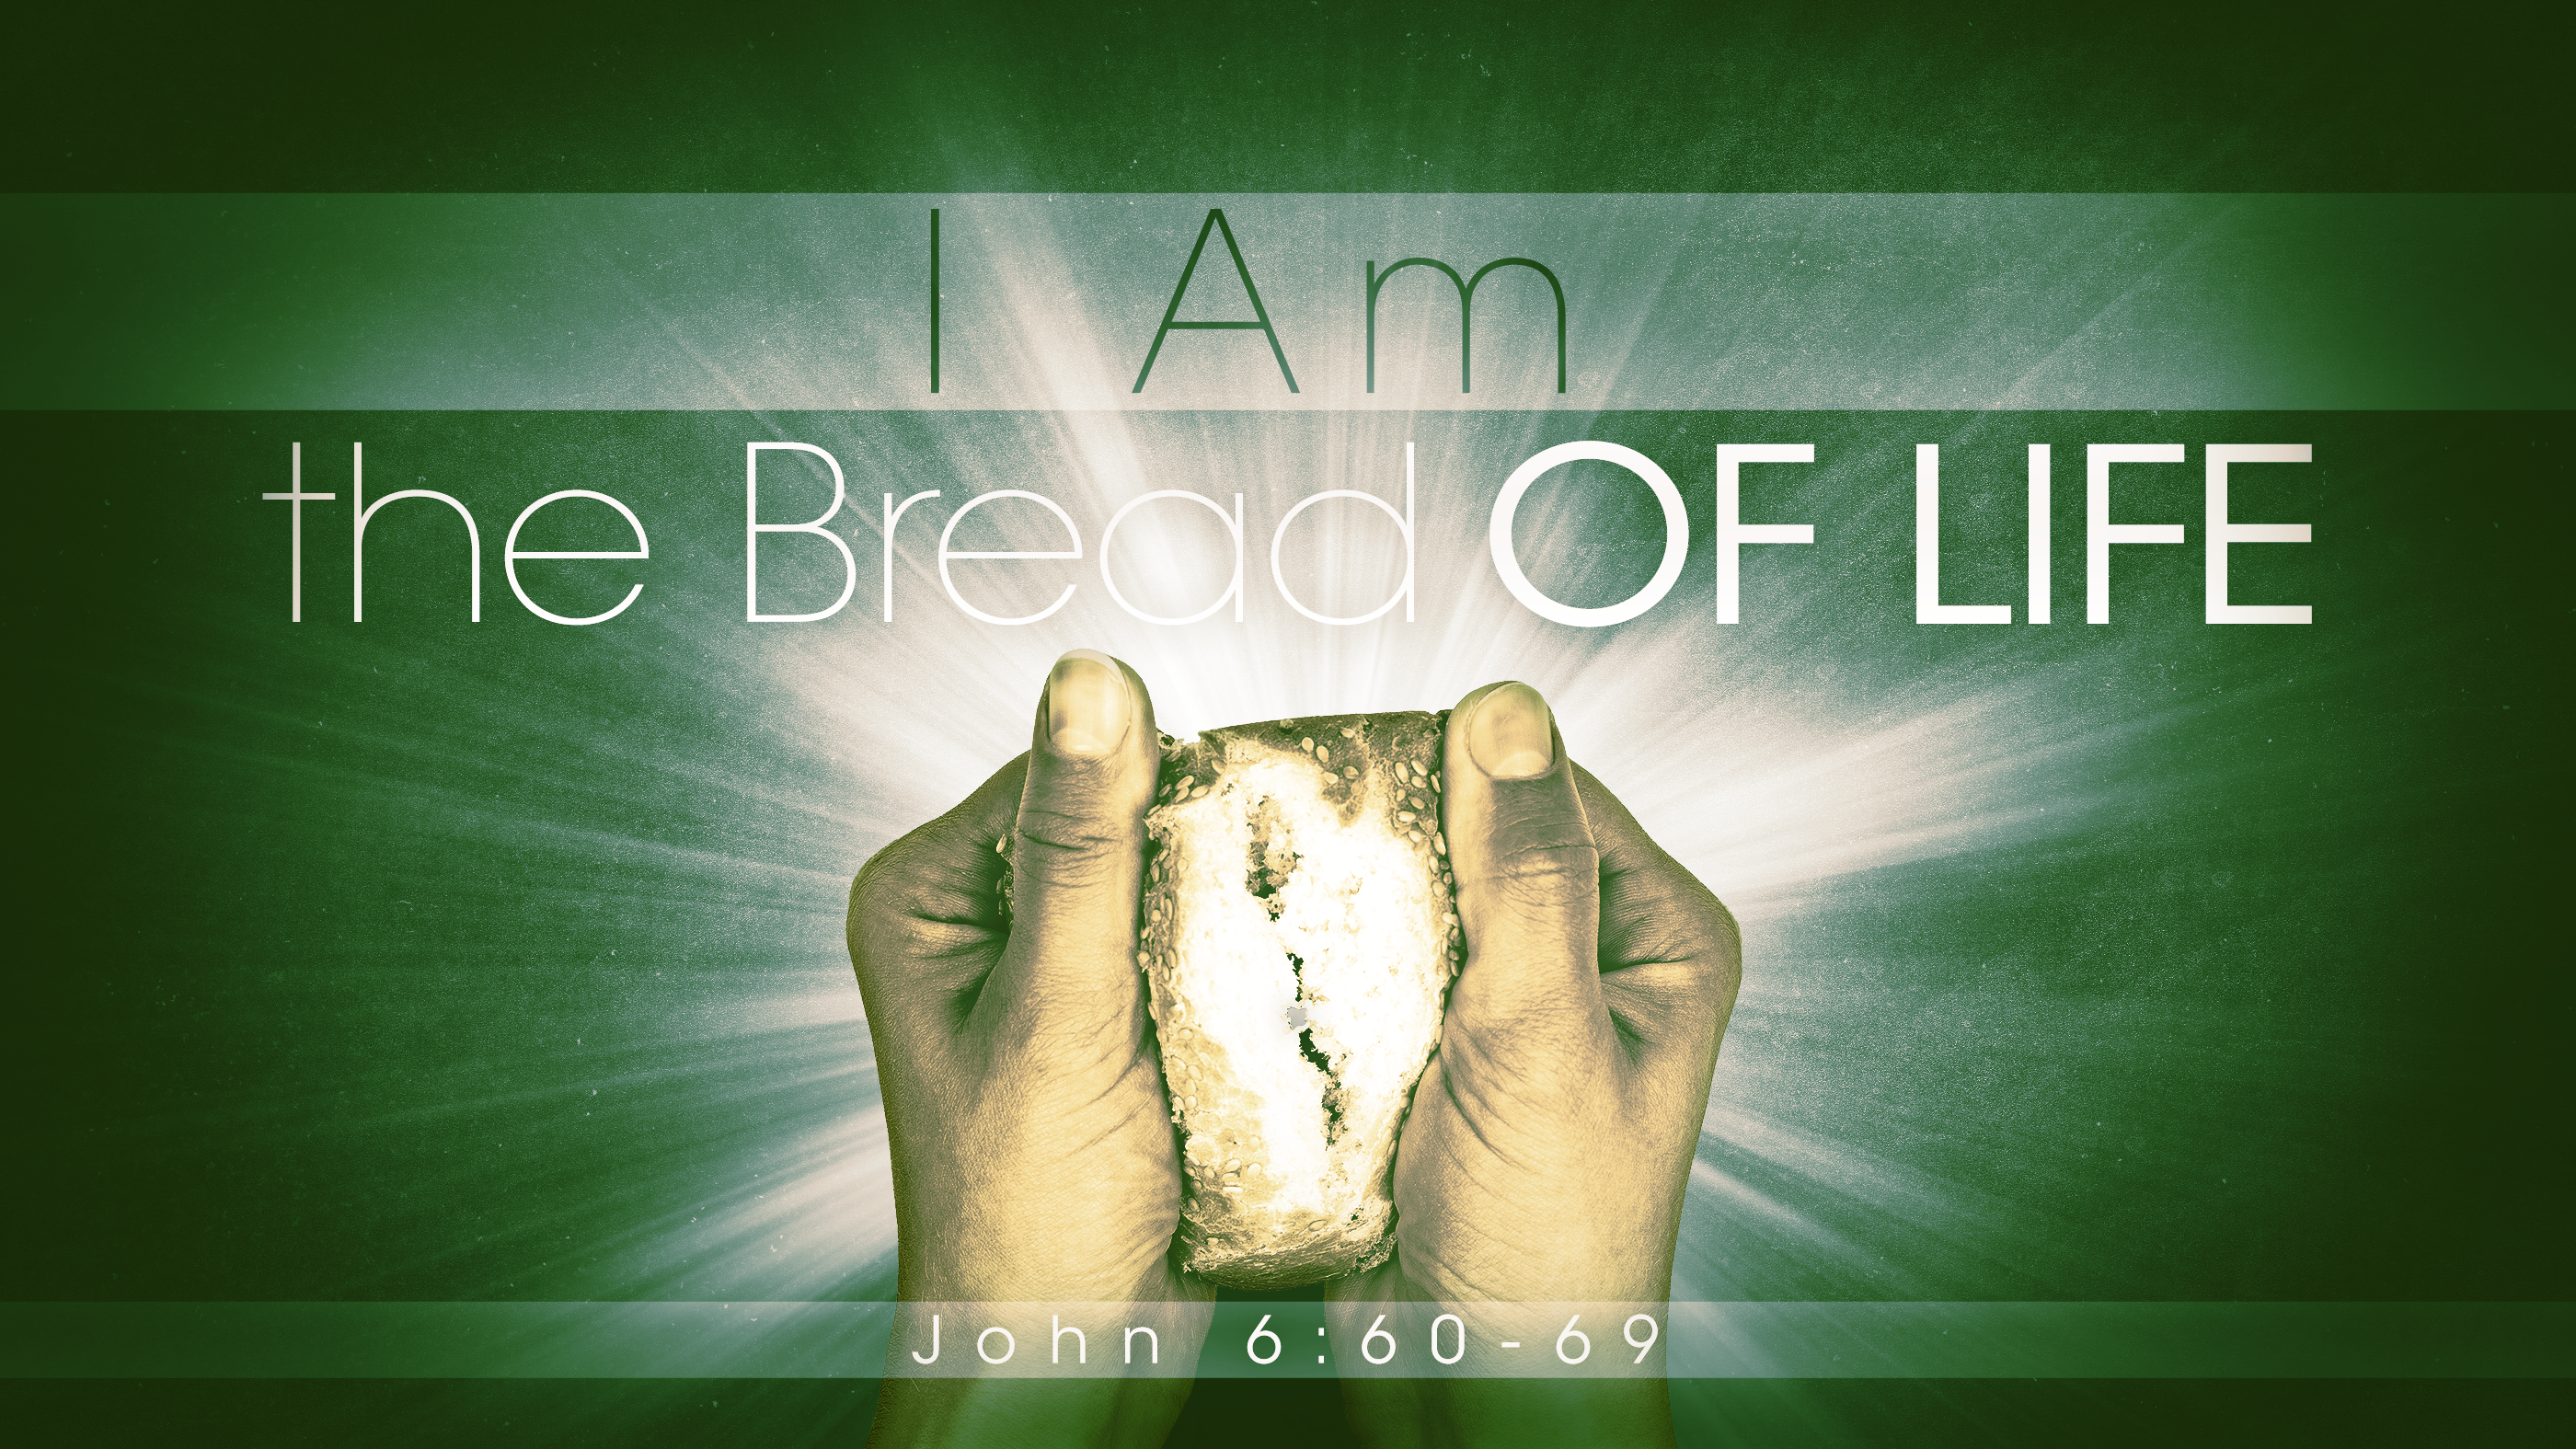 John 6:60-69 I Am the Bread OF LIFE - Faithlife Sermons